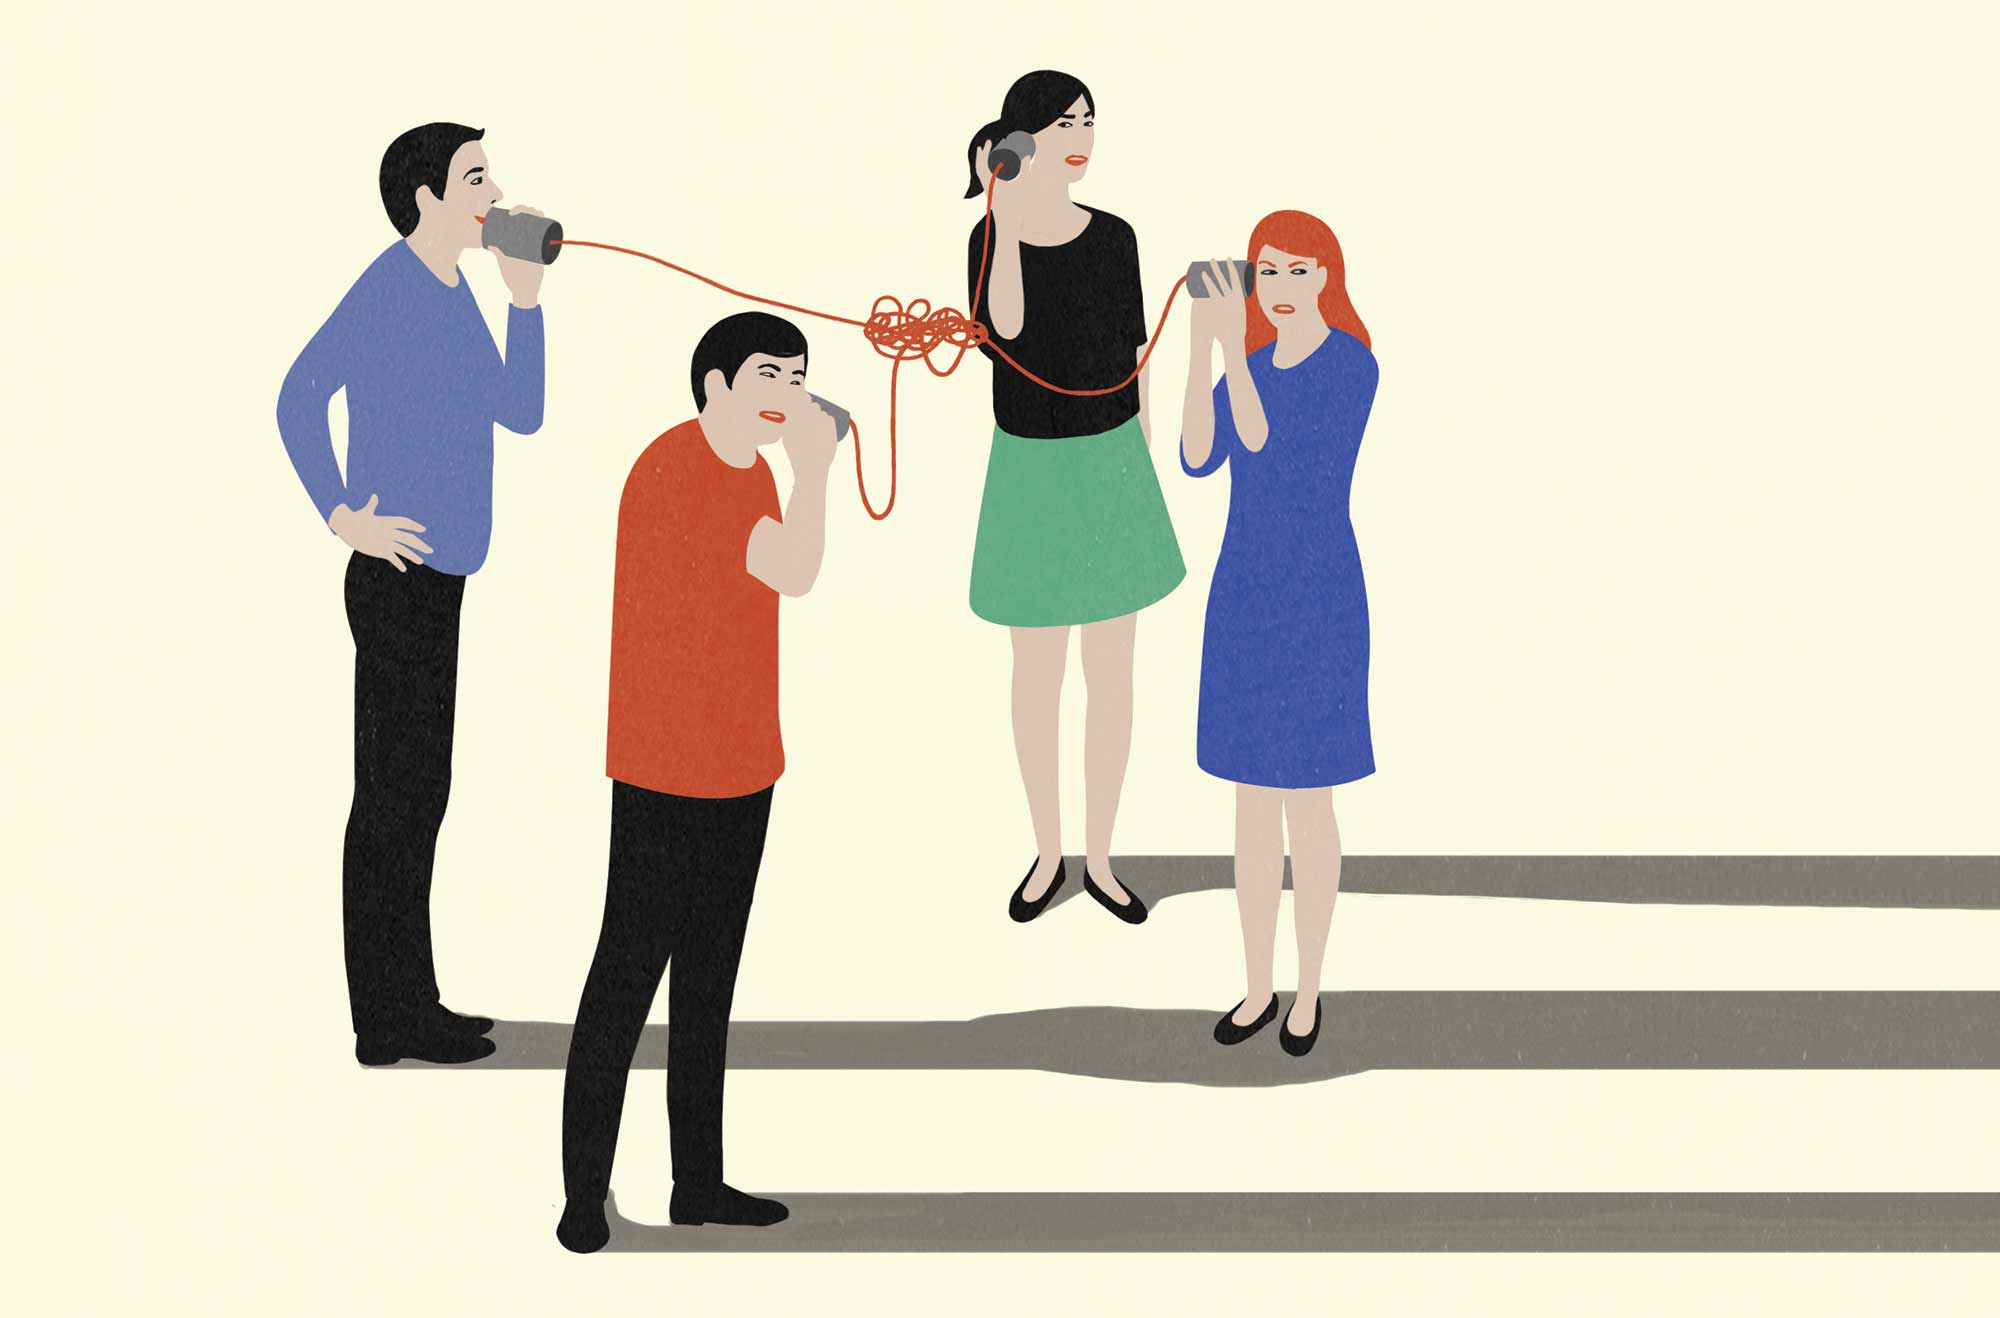 5 Proactive Ways to Clear Conflict in the Virtual Workplace